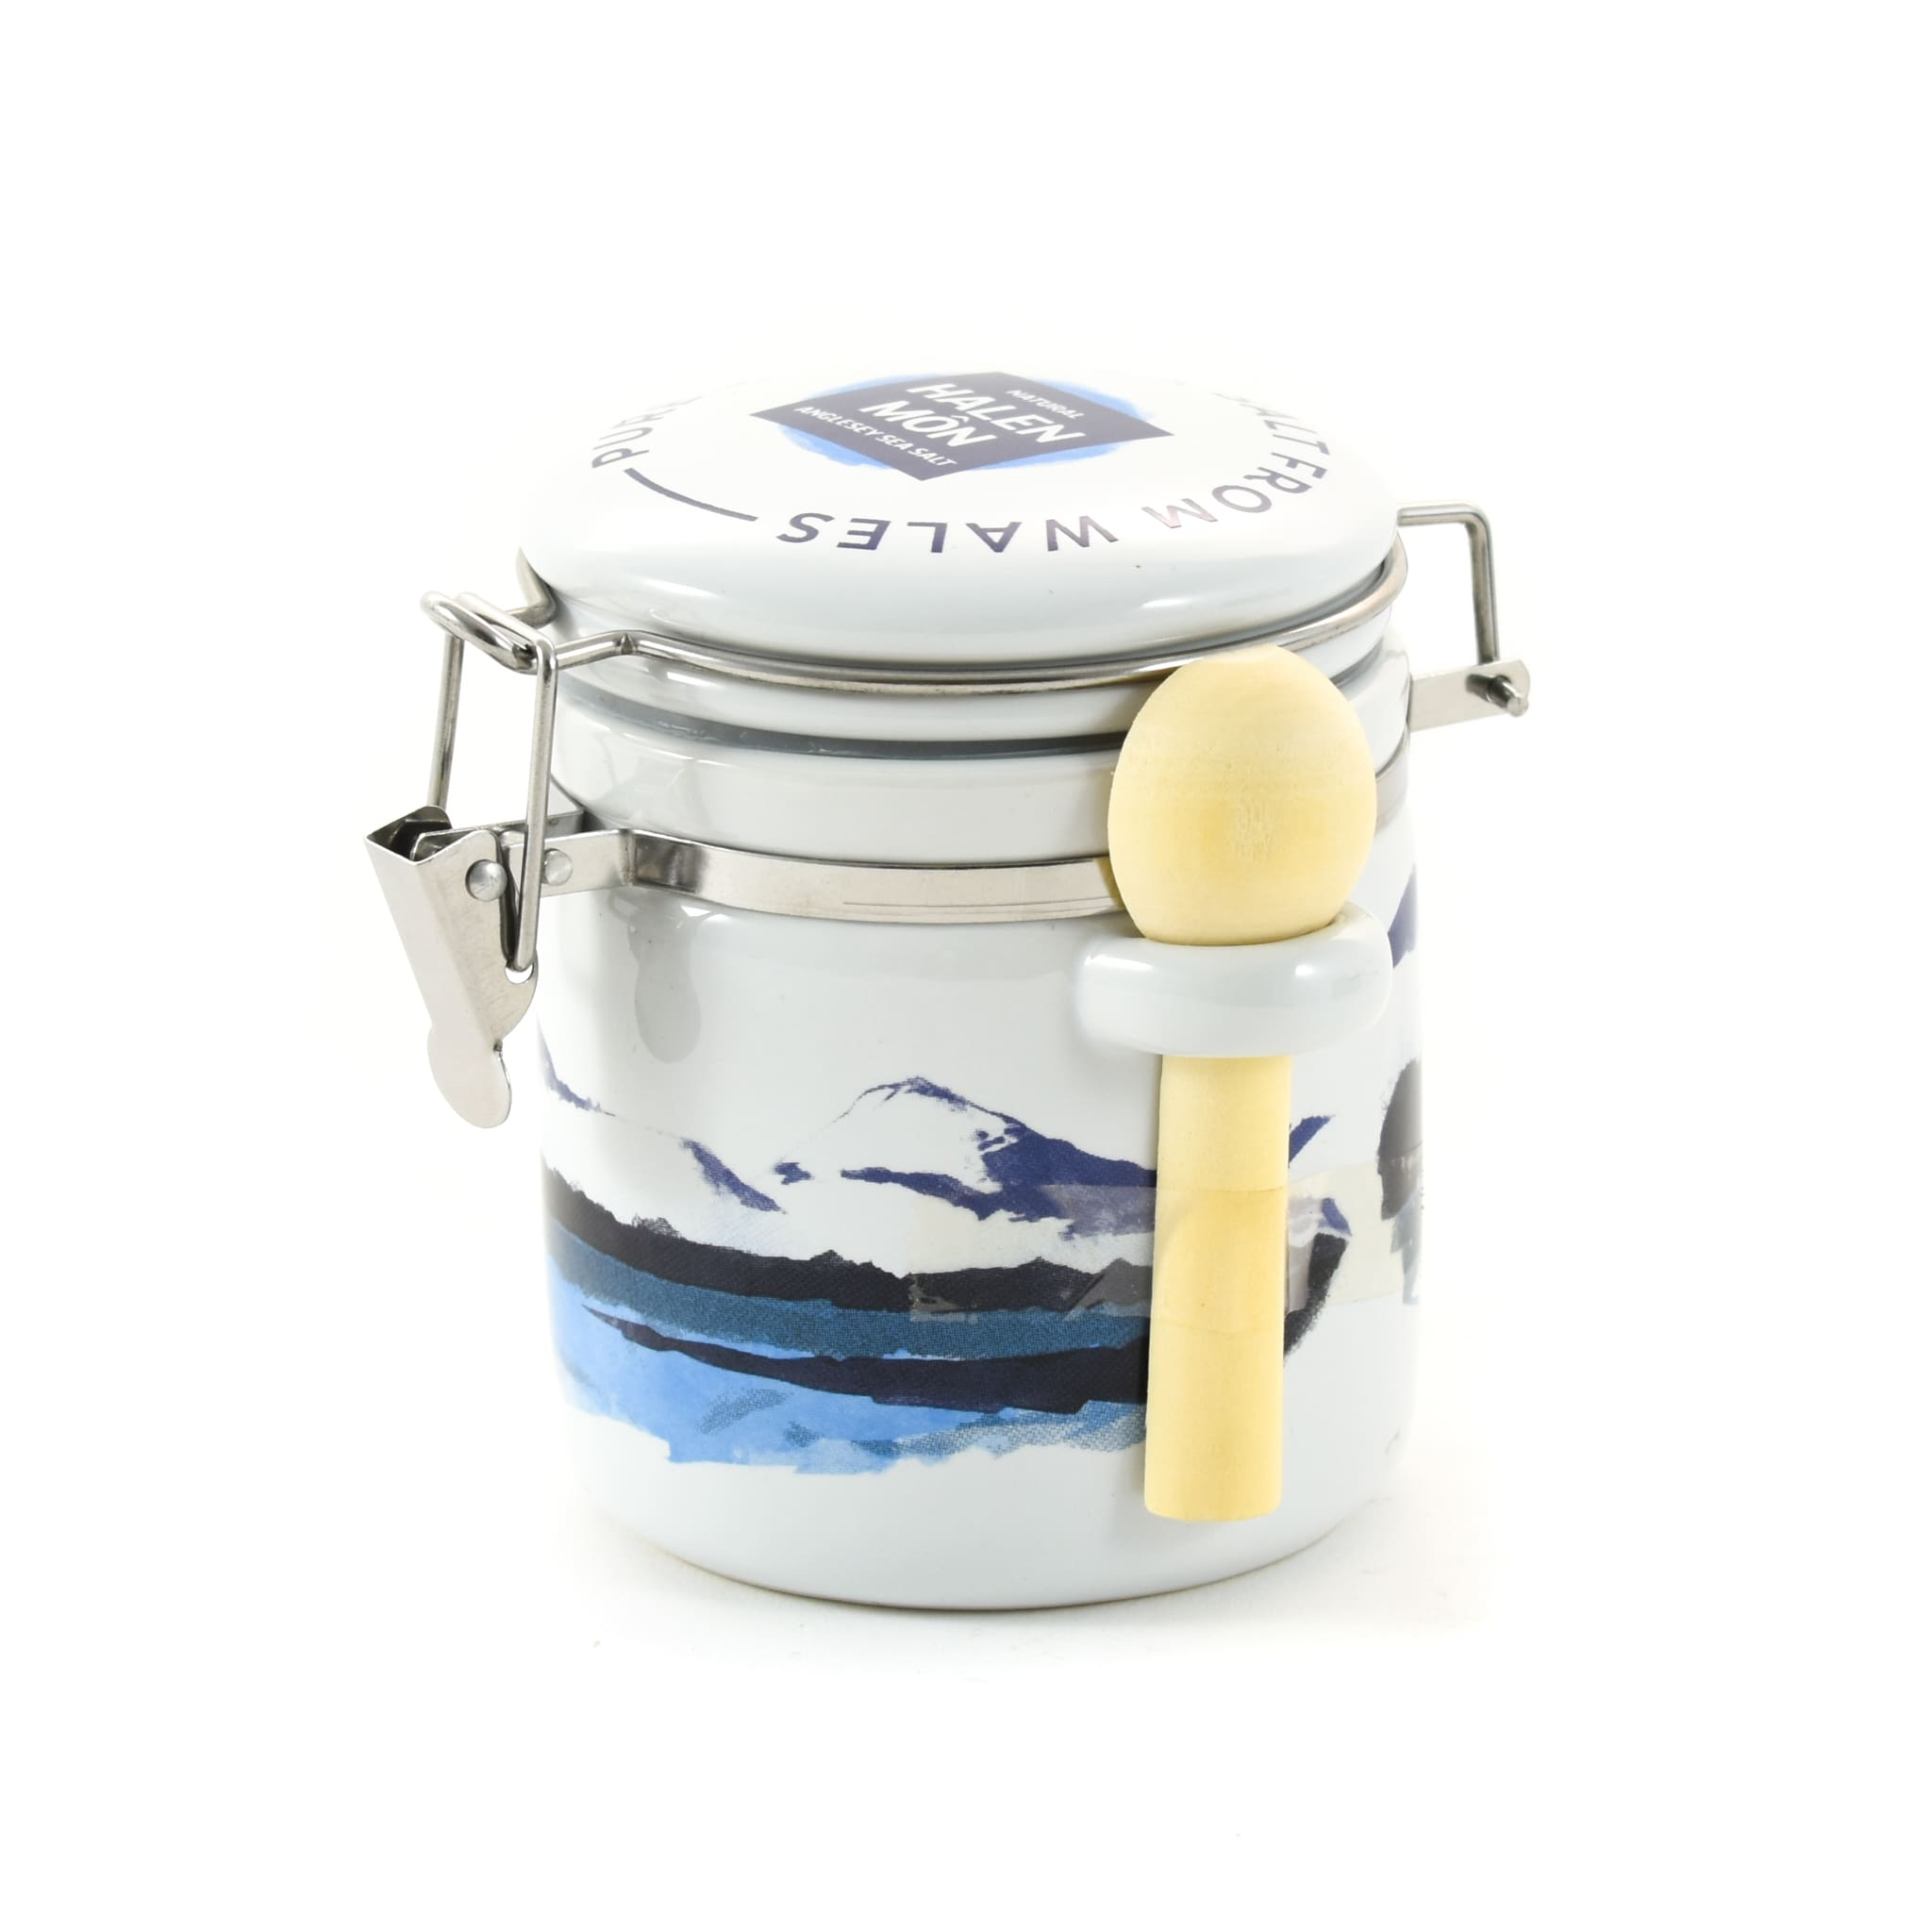 Halen Môn Pure Sea Salt in Watercolour Ceramic Jar 100g